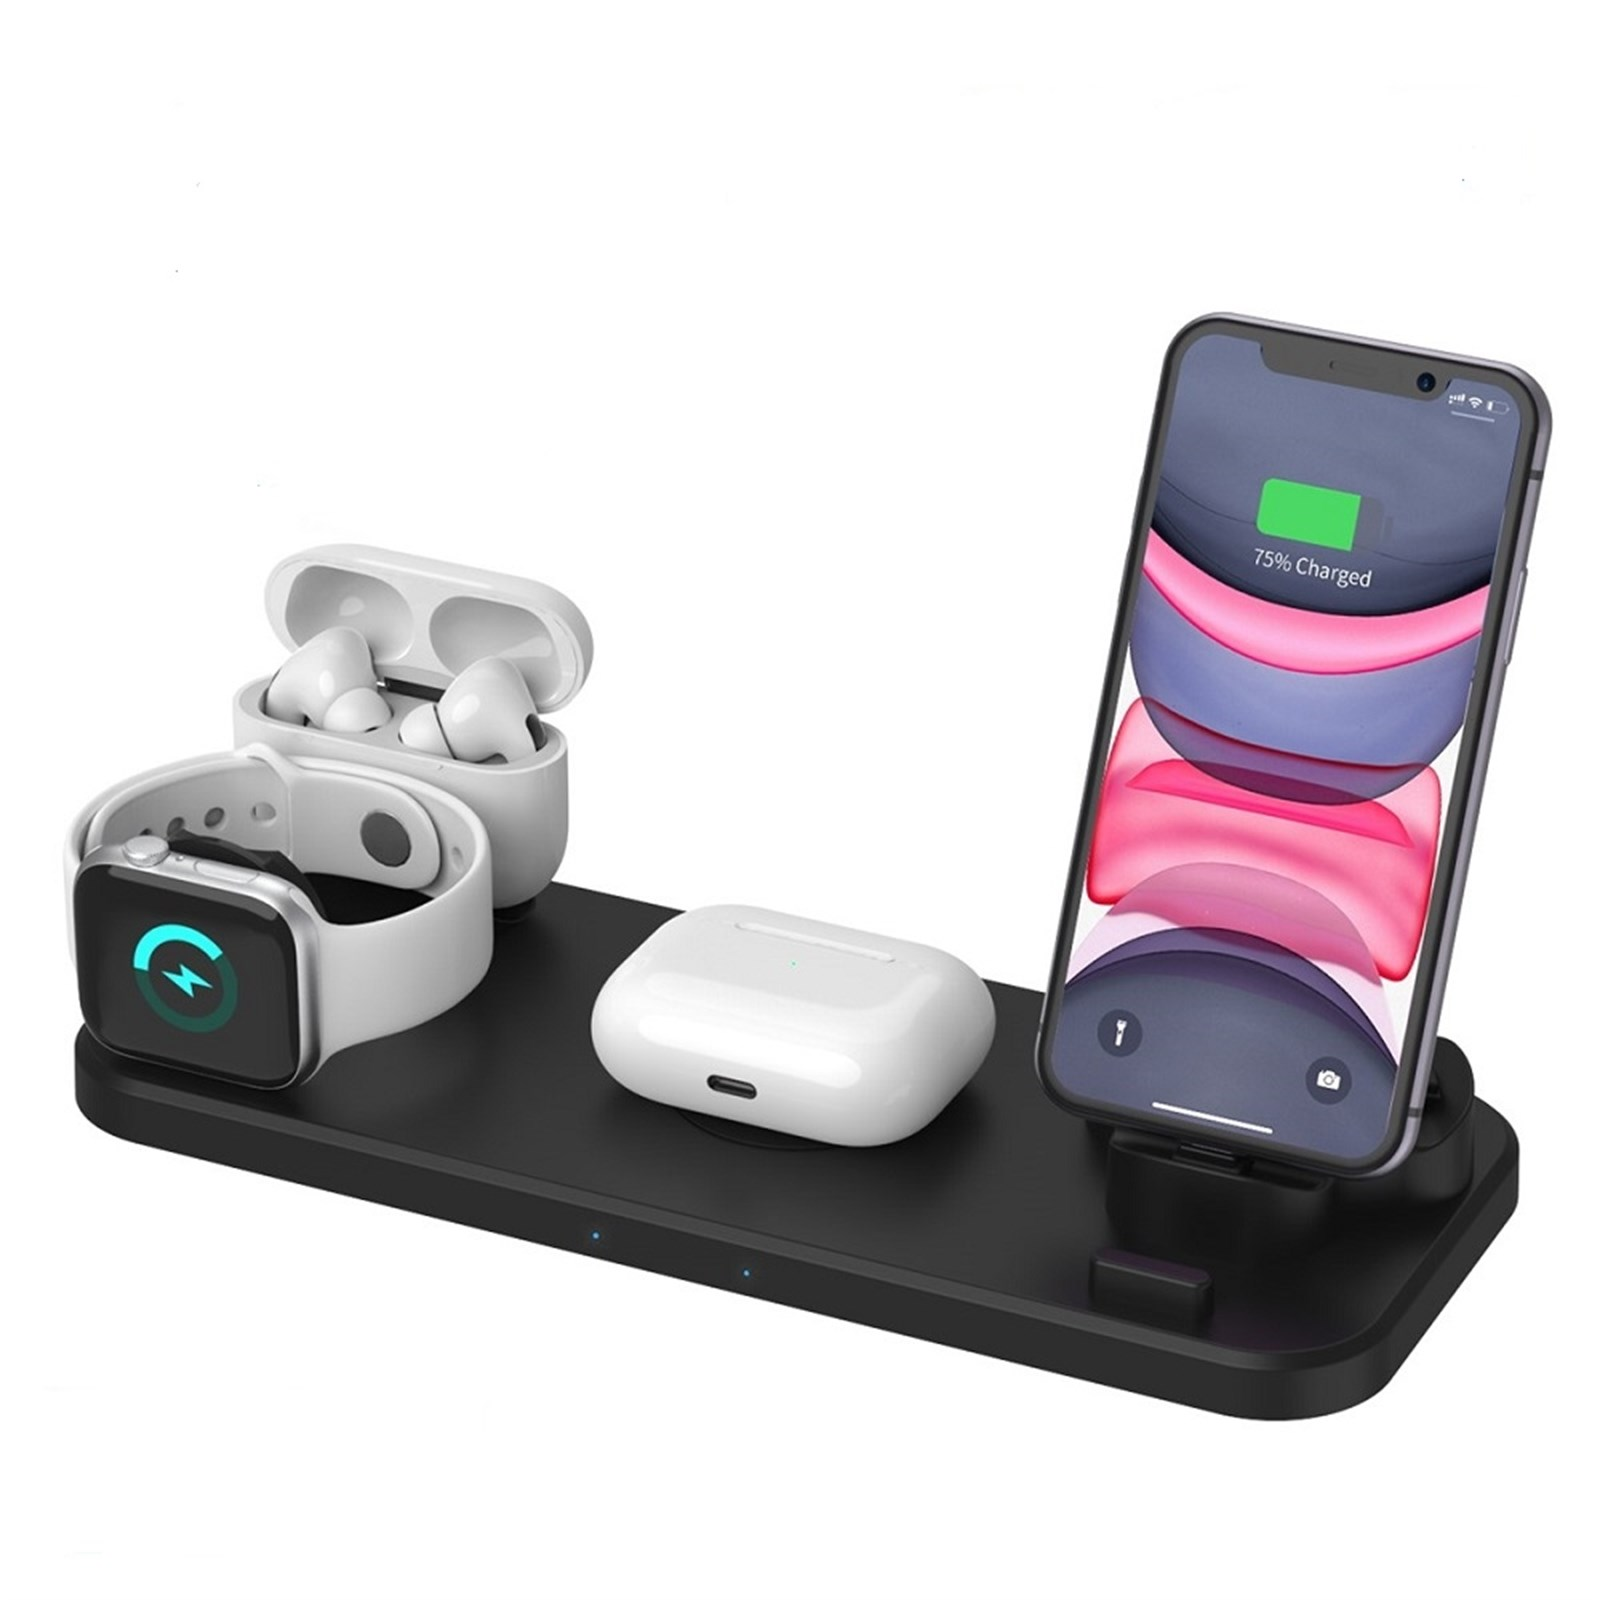 6-in-1 Wireless Charging Station $29.99 (Was $60)